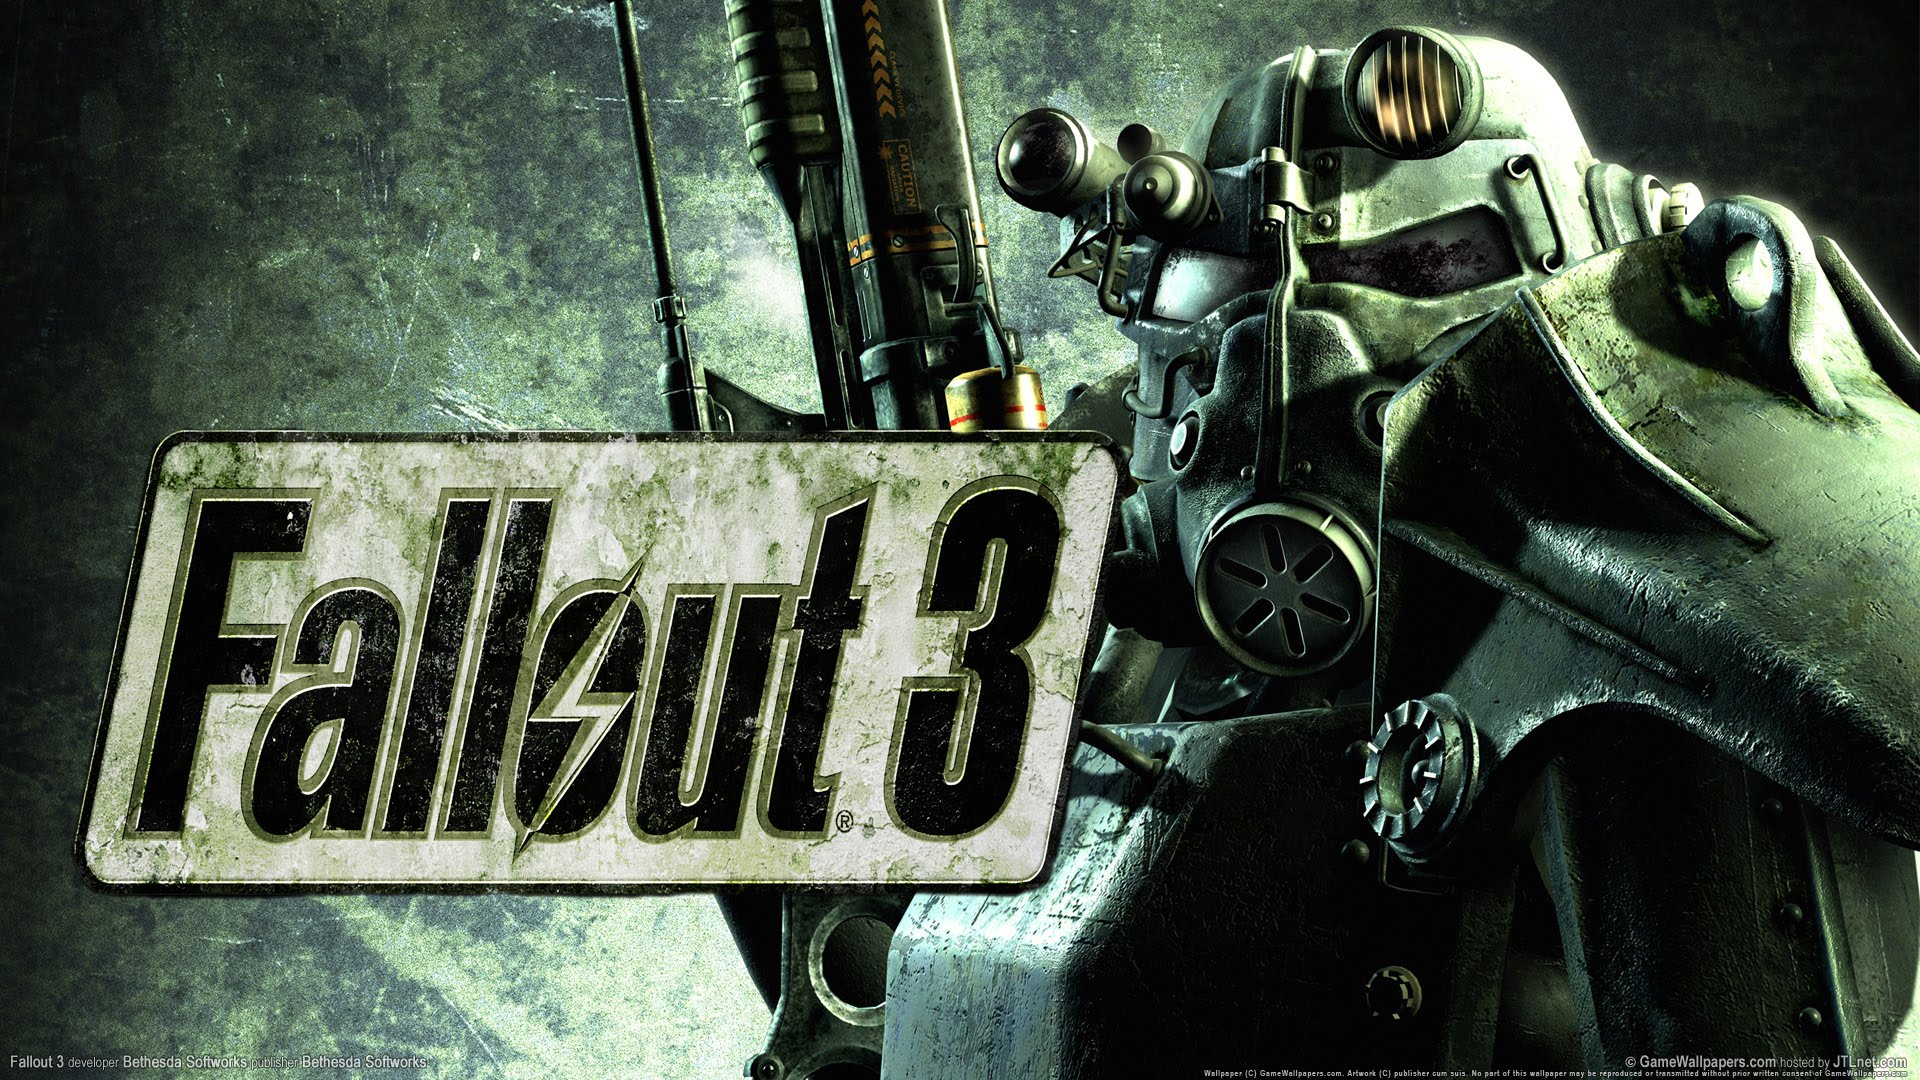 FALLOUT 3 (GAME OF THE YEAR EDITION MULTI3 PROPHET)